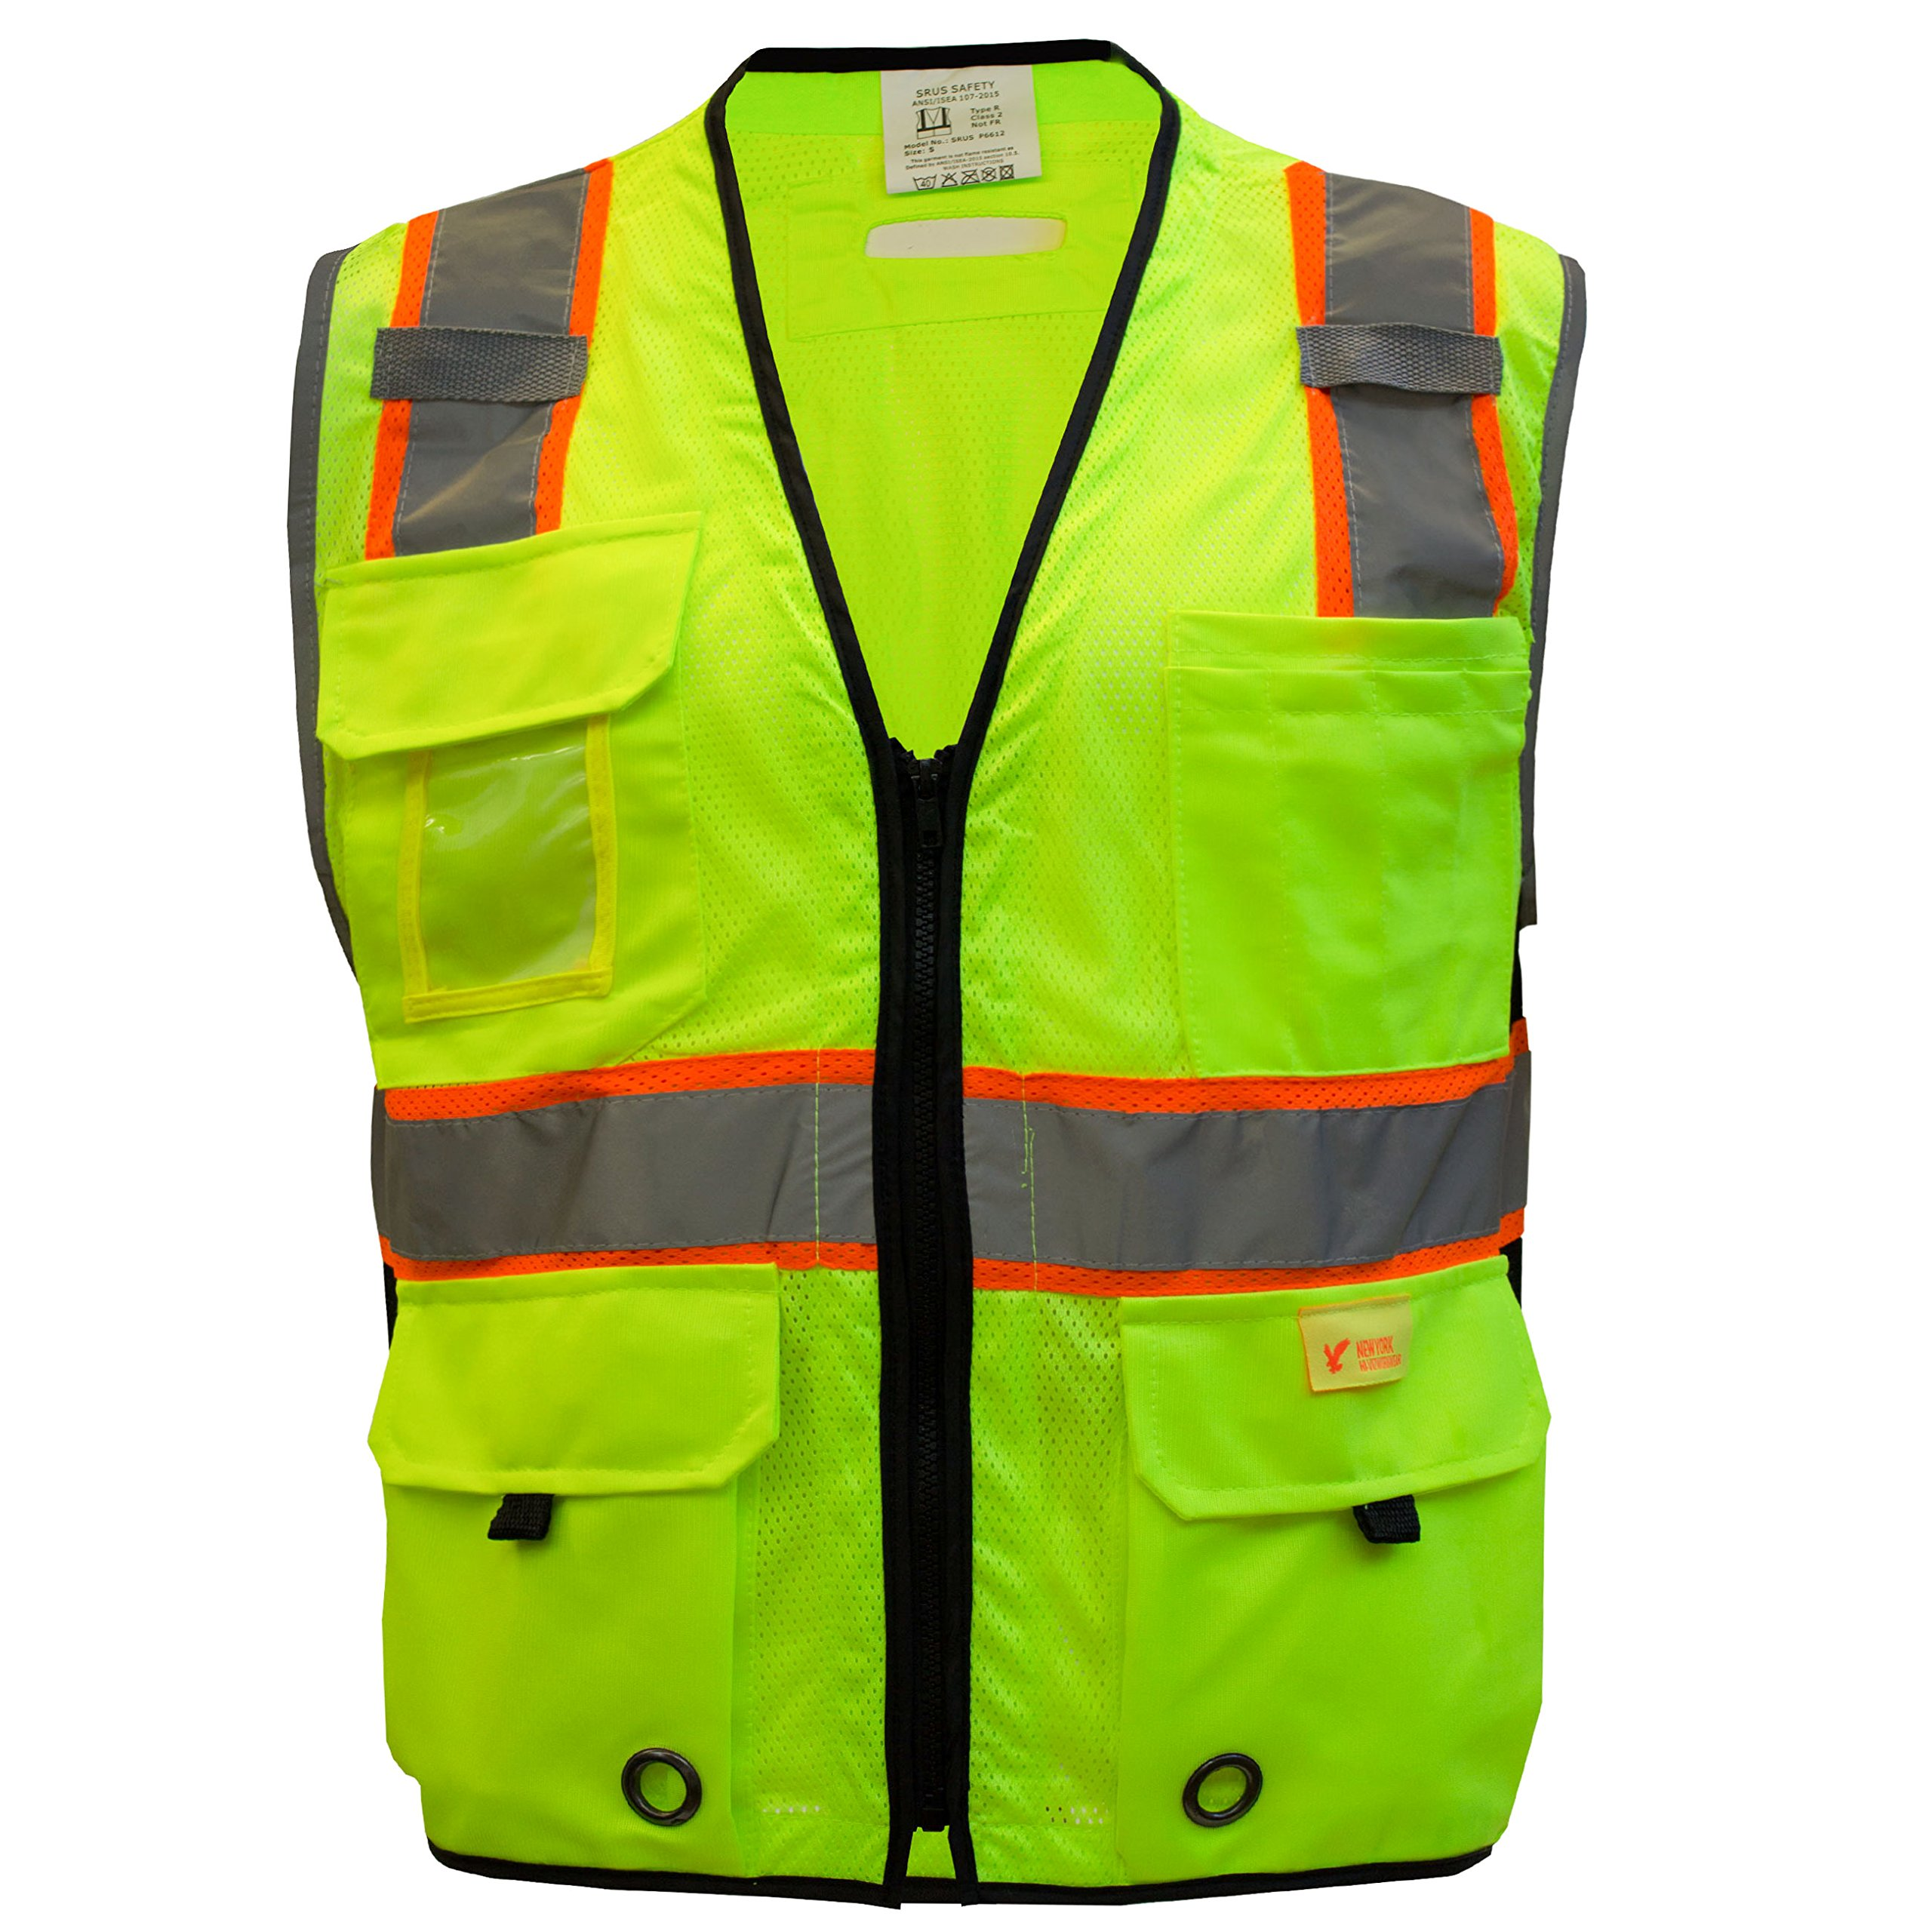 RK Safety P6612 Class 2 High Visible Two Tone Reflective Strips Breathable Mesh Vest, Pockets Harness D-Ring Pass Thru, ANSI/ISEA, Construction Motorcycle Traffic Emergency (Lime, Medium) by New York Hi-Viz Workwear (Image #2)